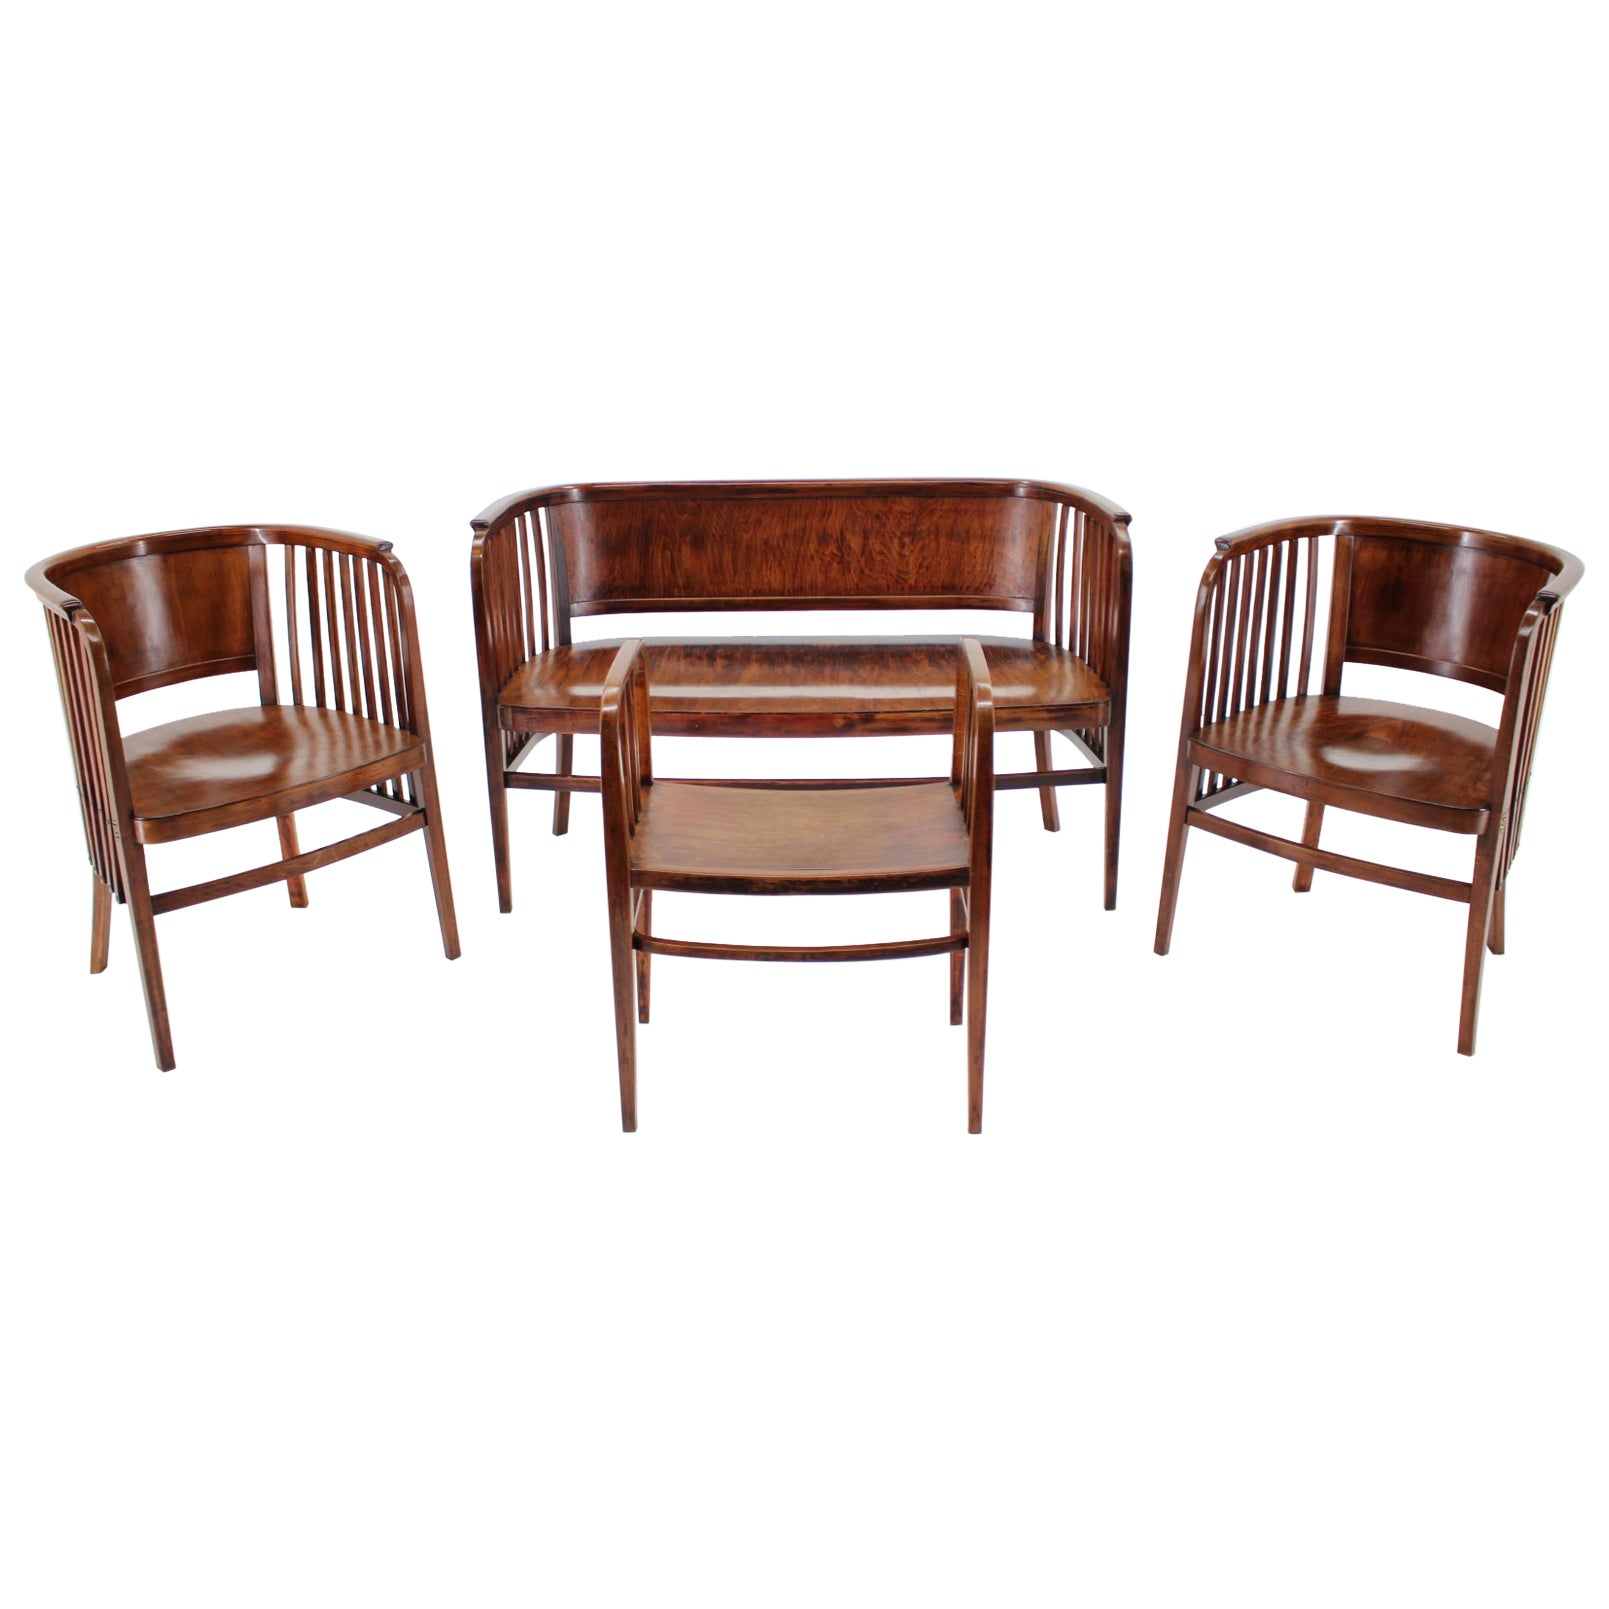 1910s Marcel Kammerer Wooden Sofa, Chairs and Stool for Gebruder Thonet